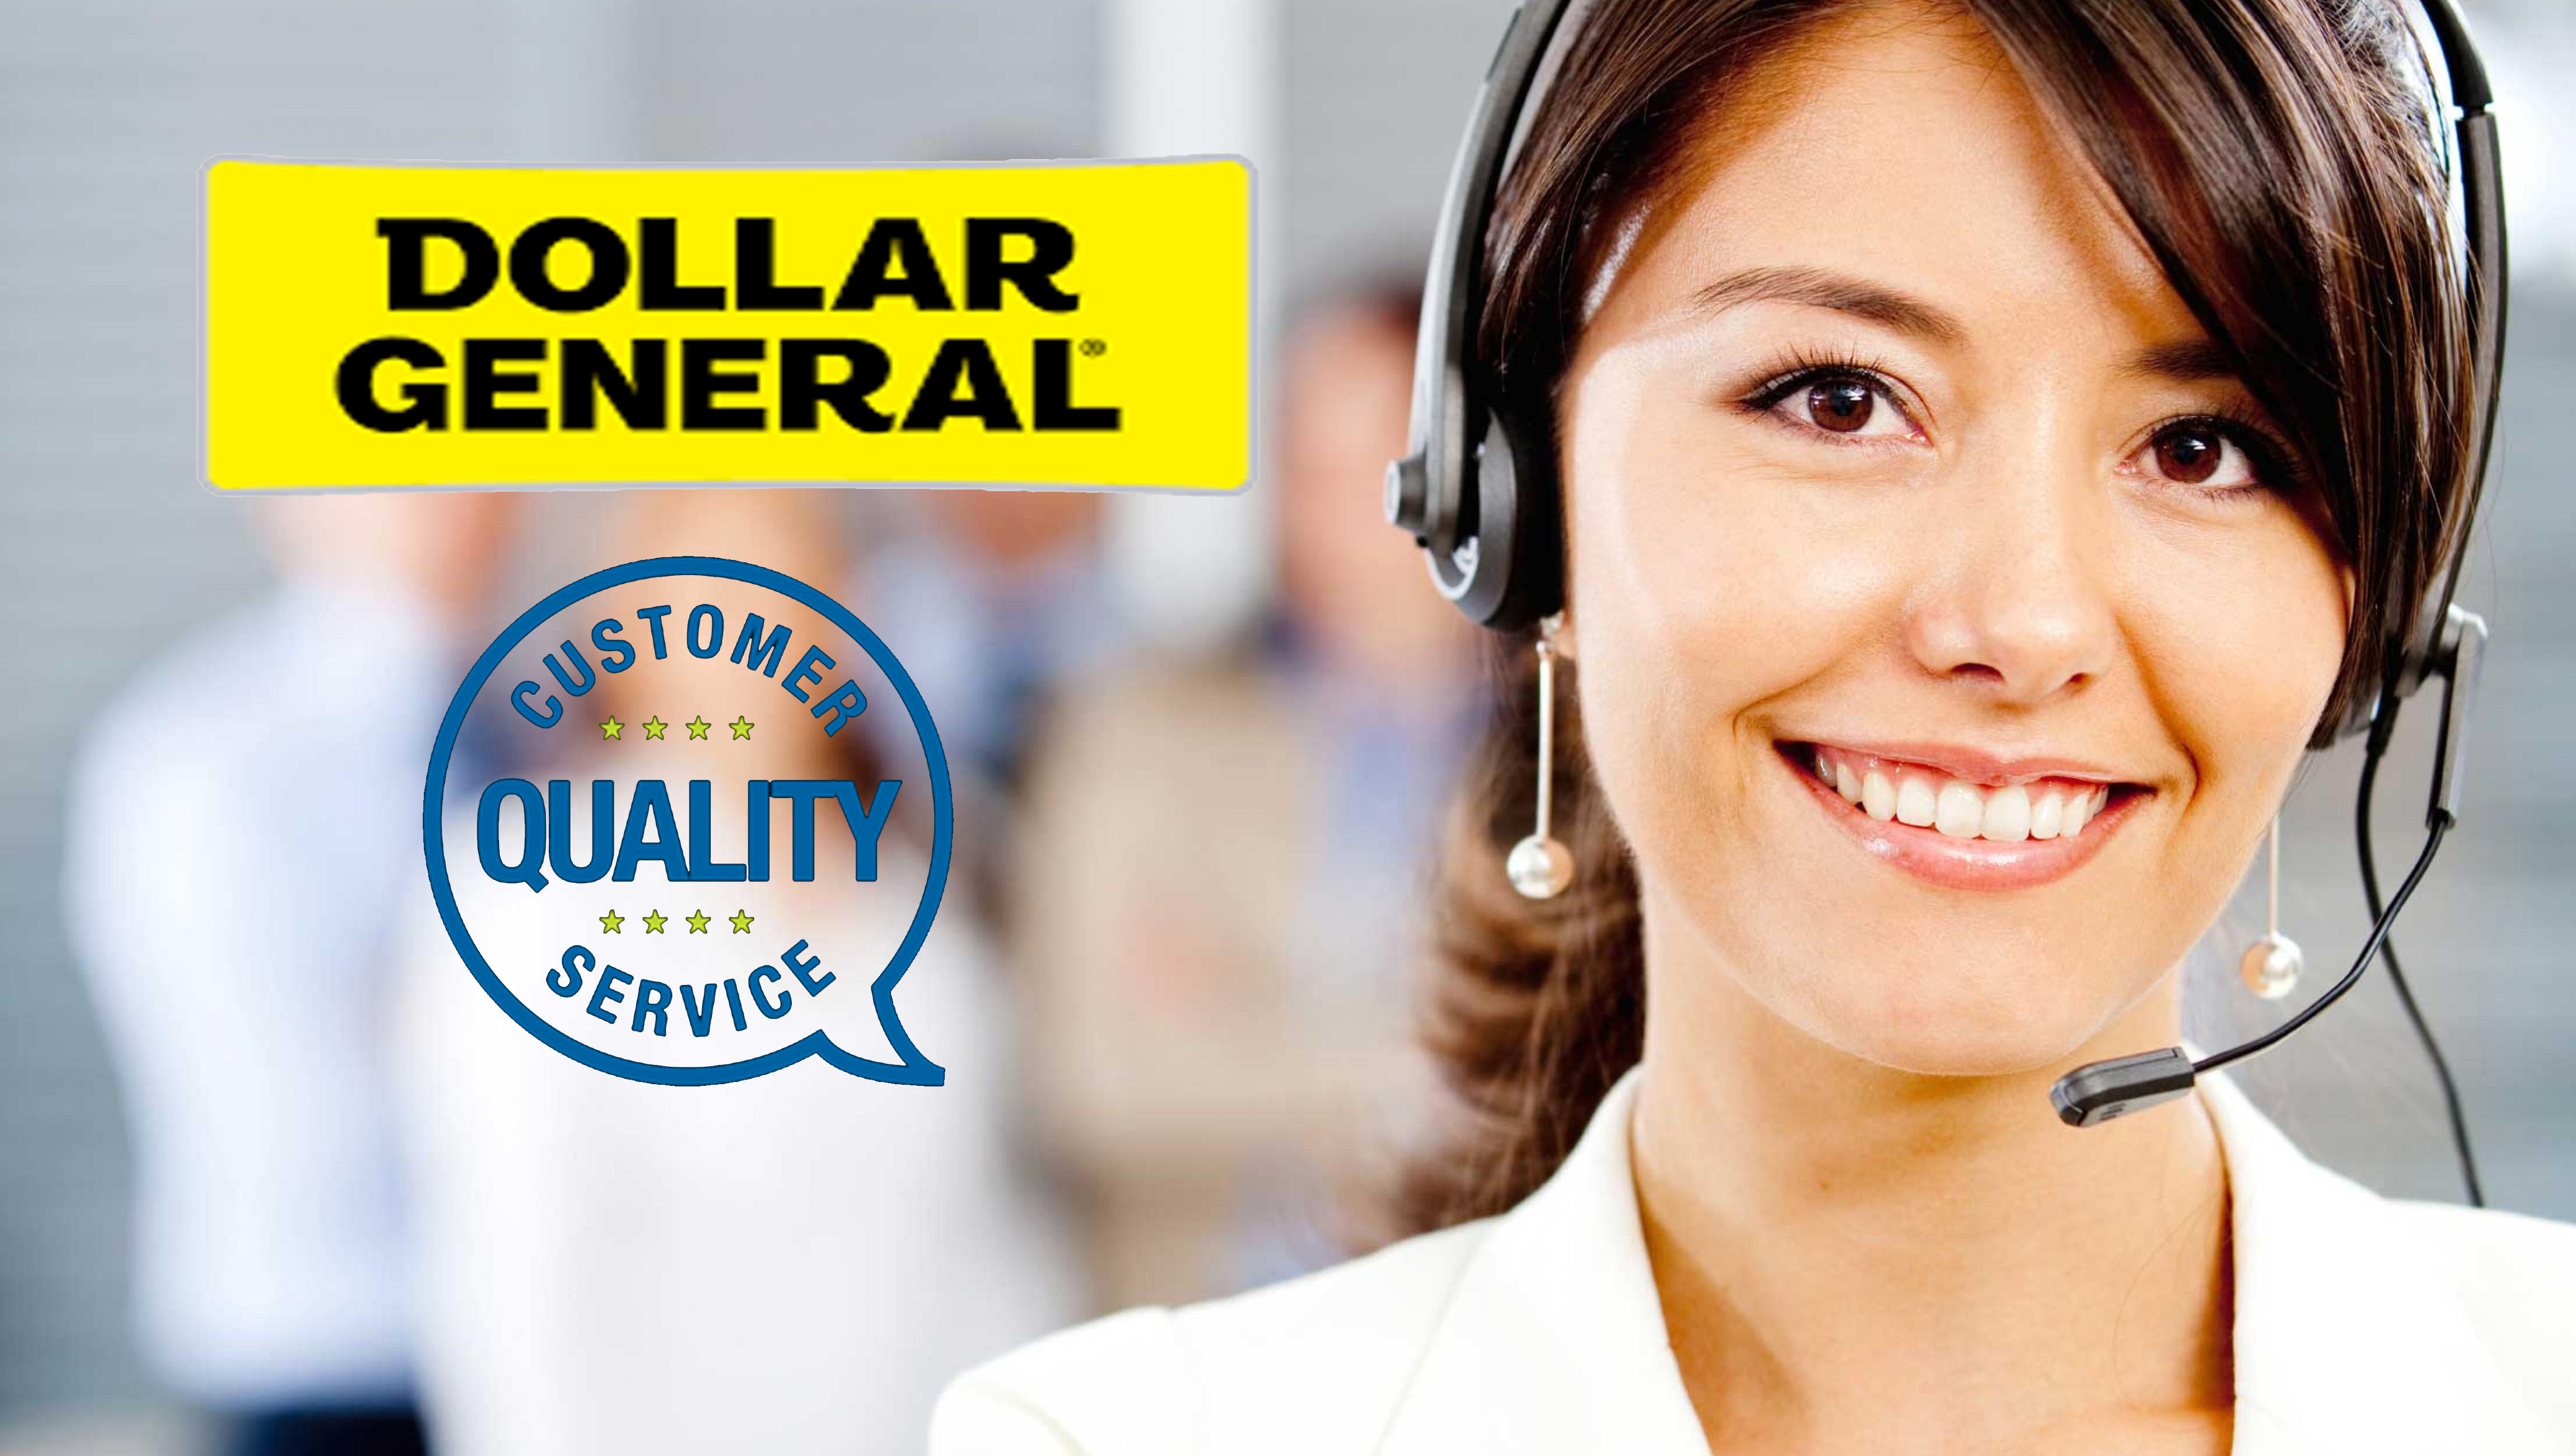 Dollar General customer services